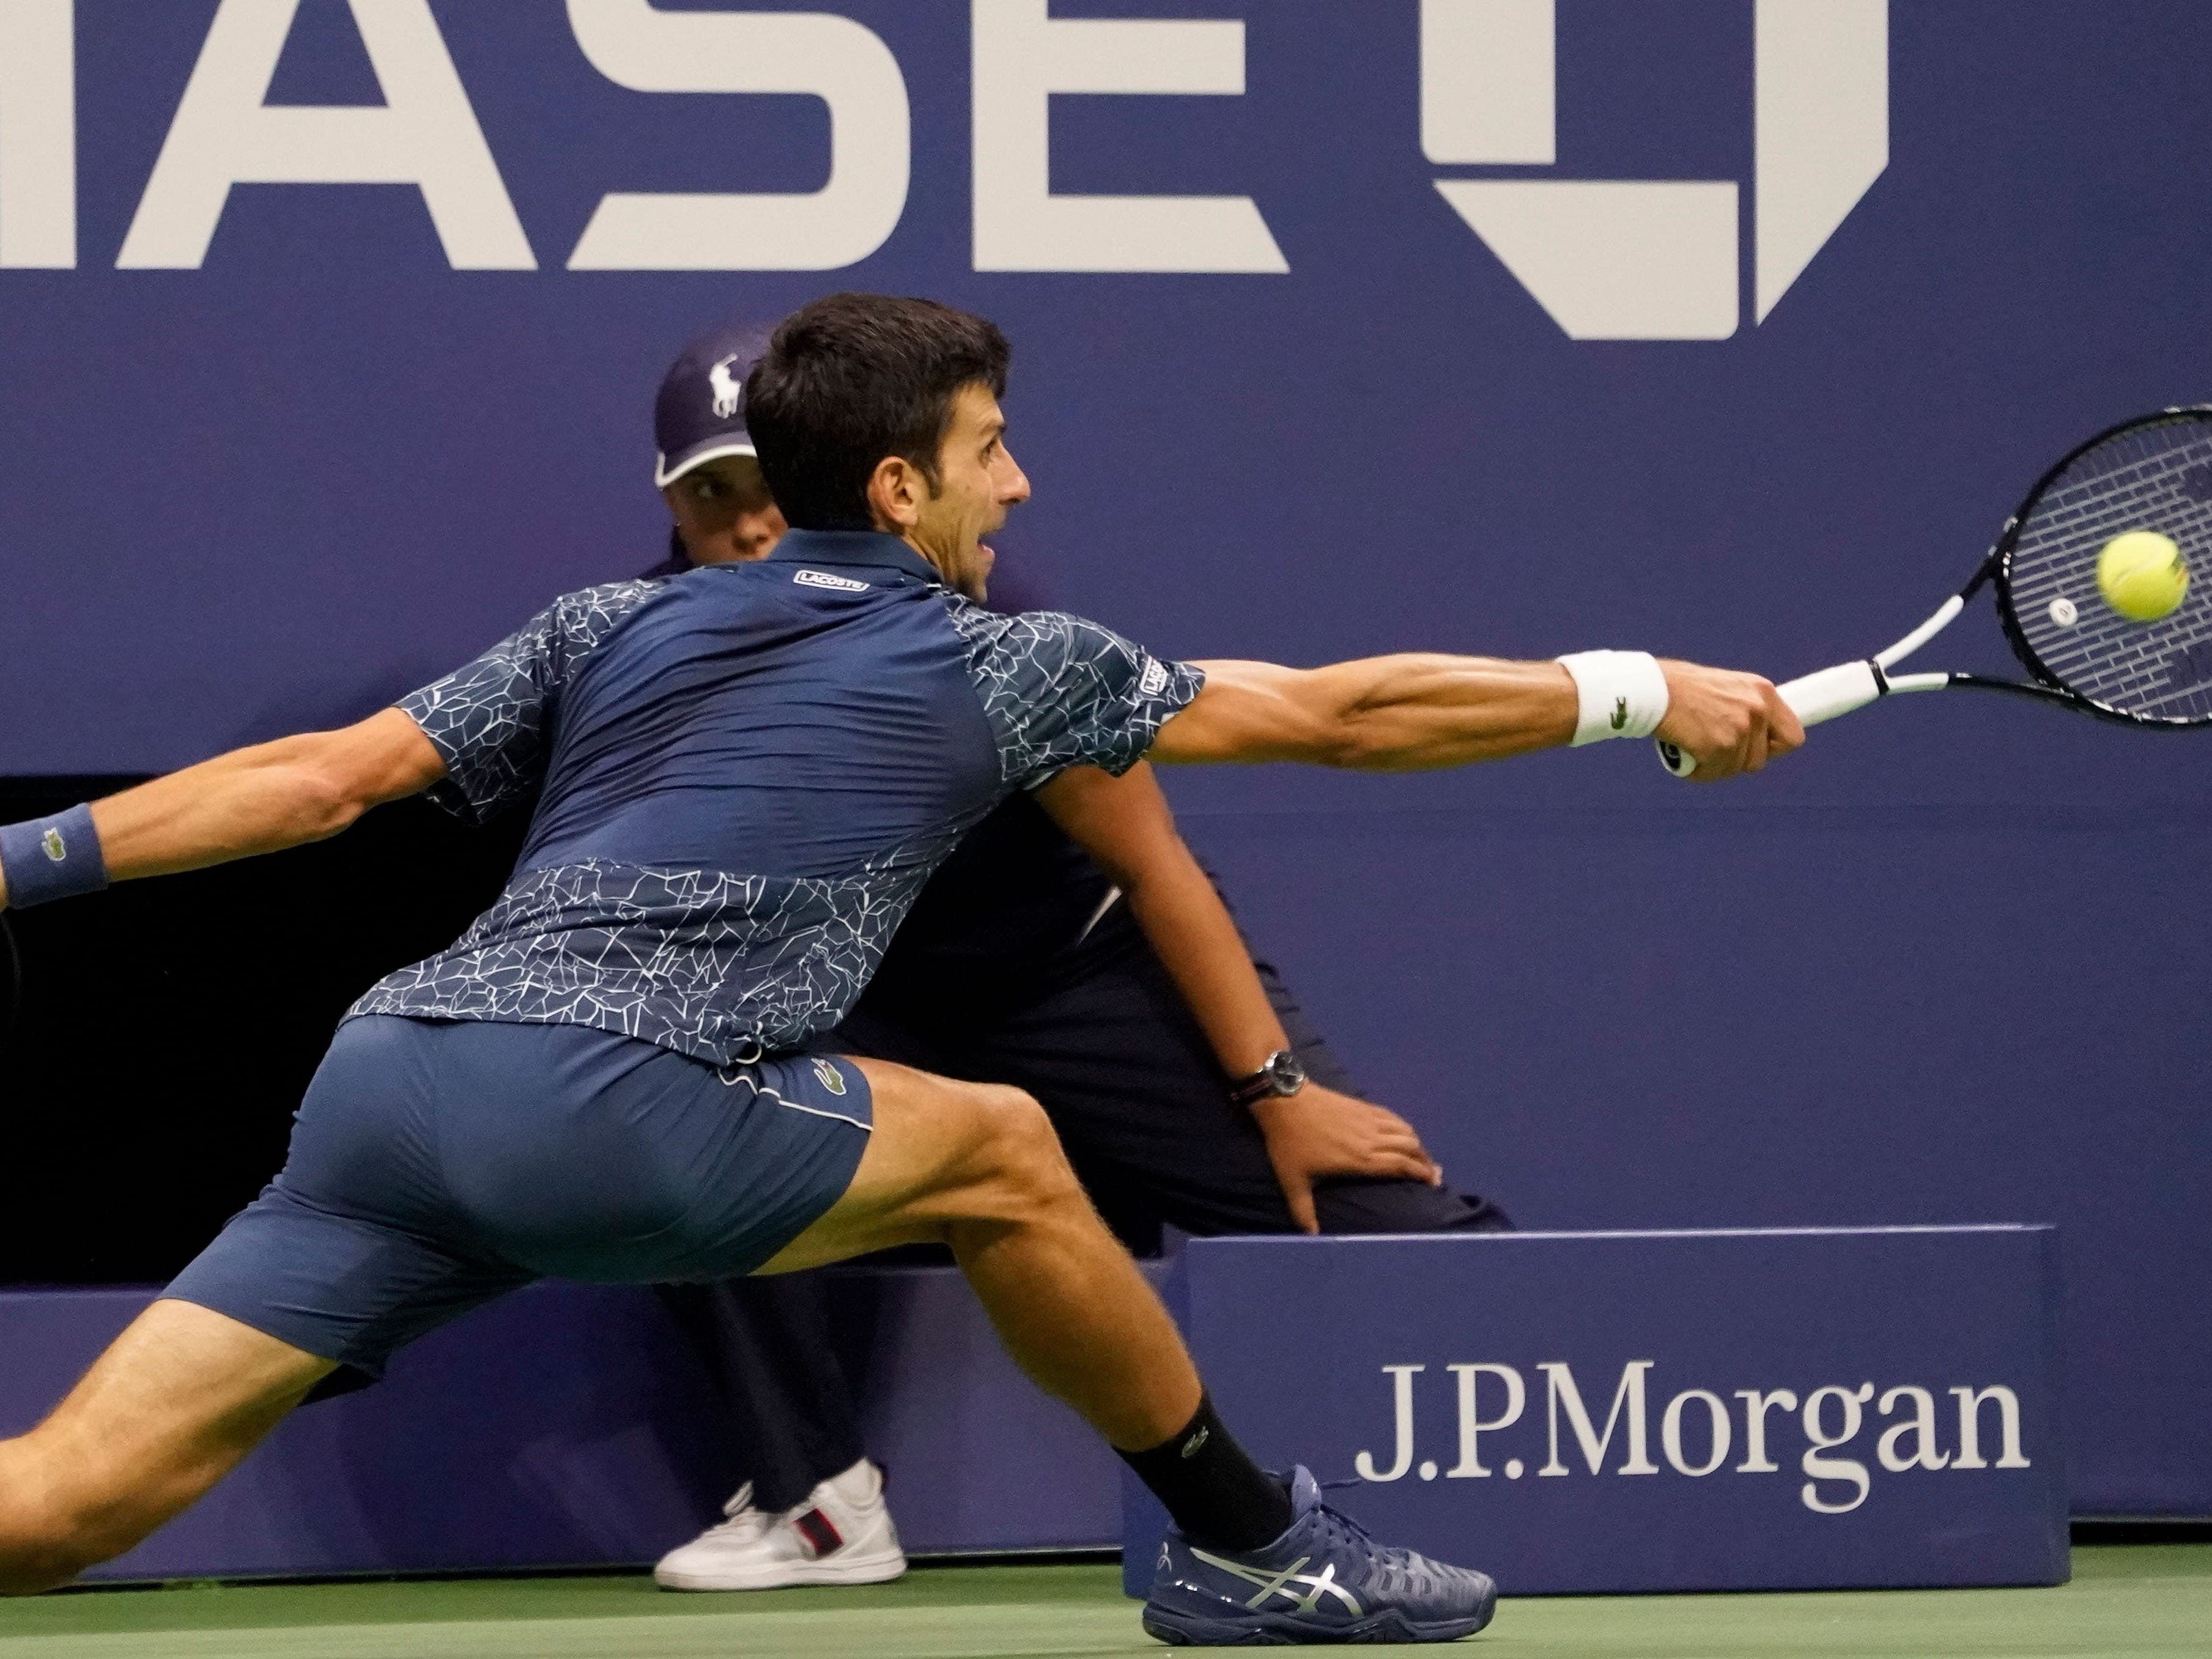 Novak Djokovic stretches for a backhand return against Juan Martin del Potro.